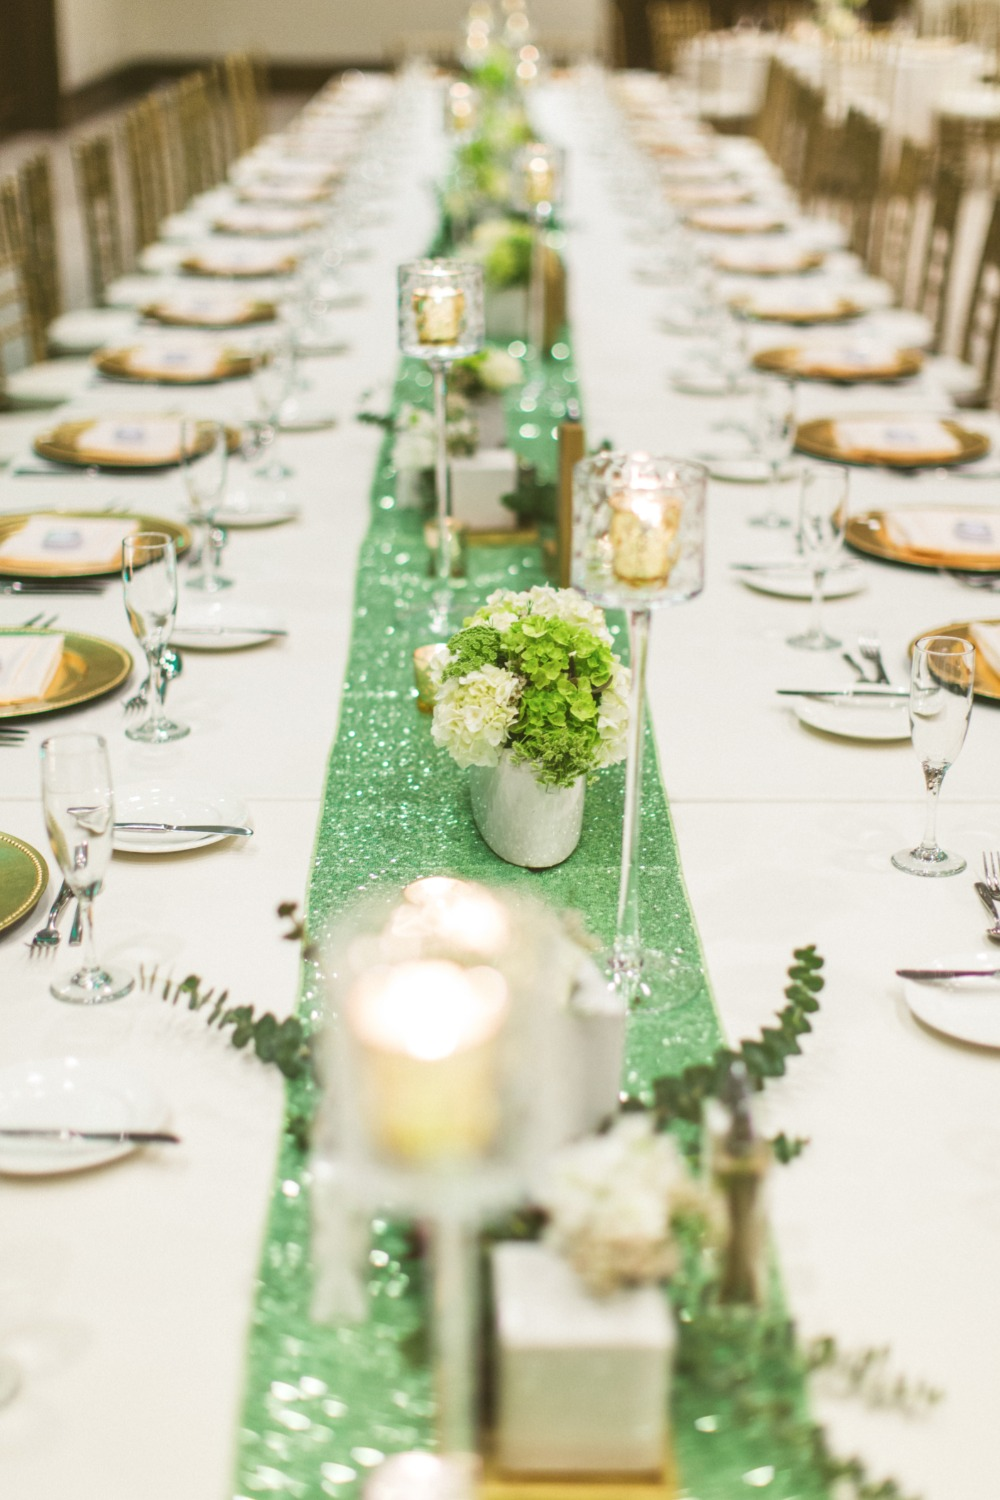 Sparkly teal table runner